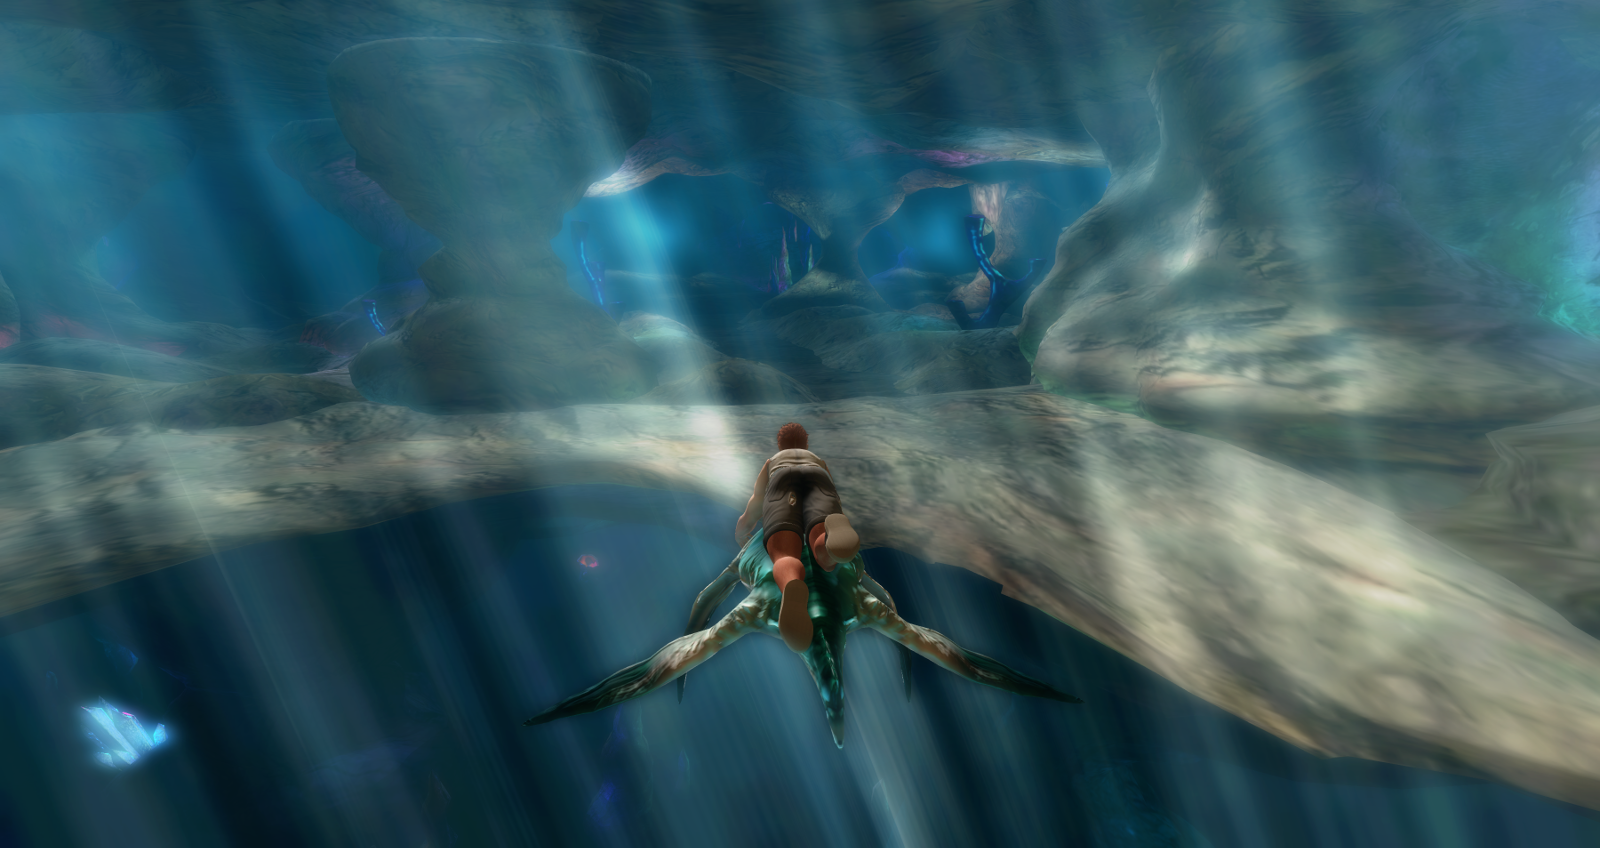 Exploring the old seas in the company of a Plesiosaurus